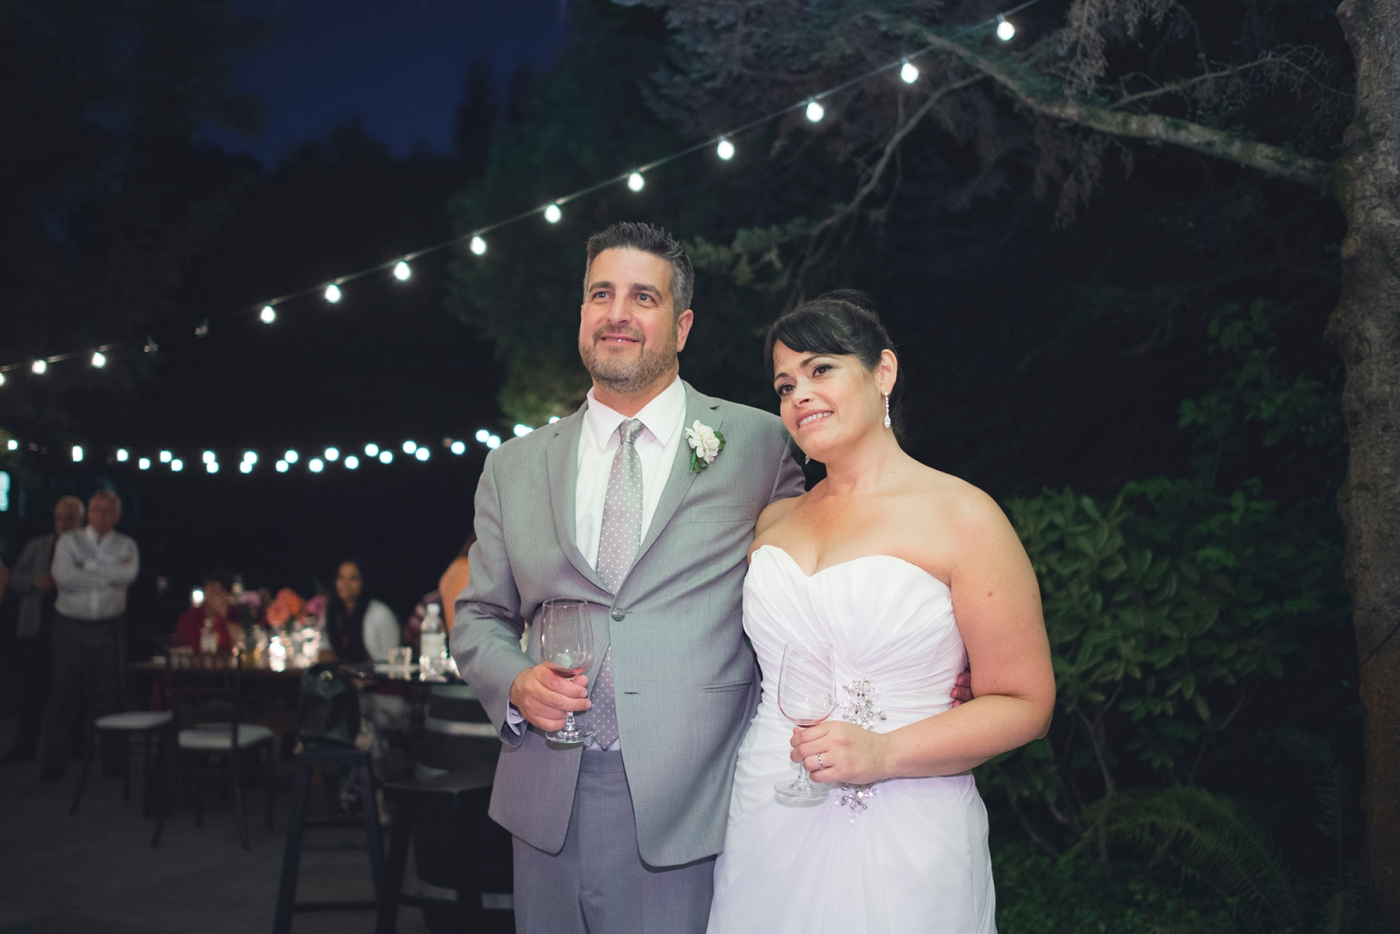 ang_matt_jm_woodinville_2016_js_photography_weddingdsc_3656